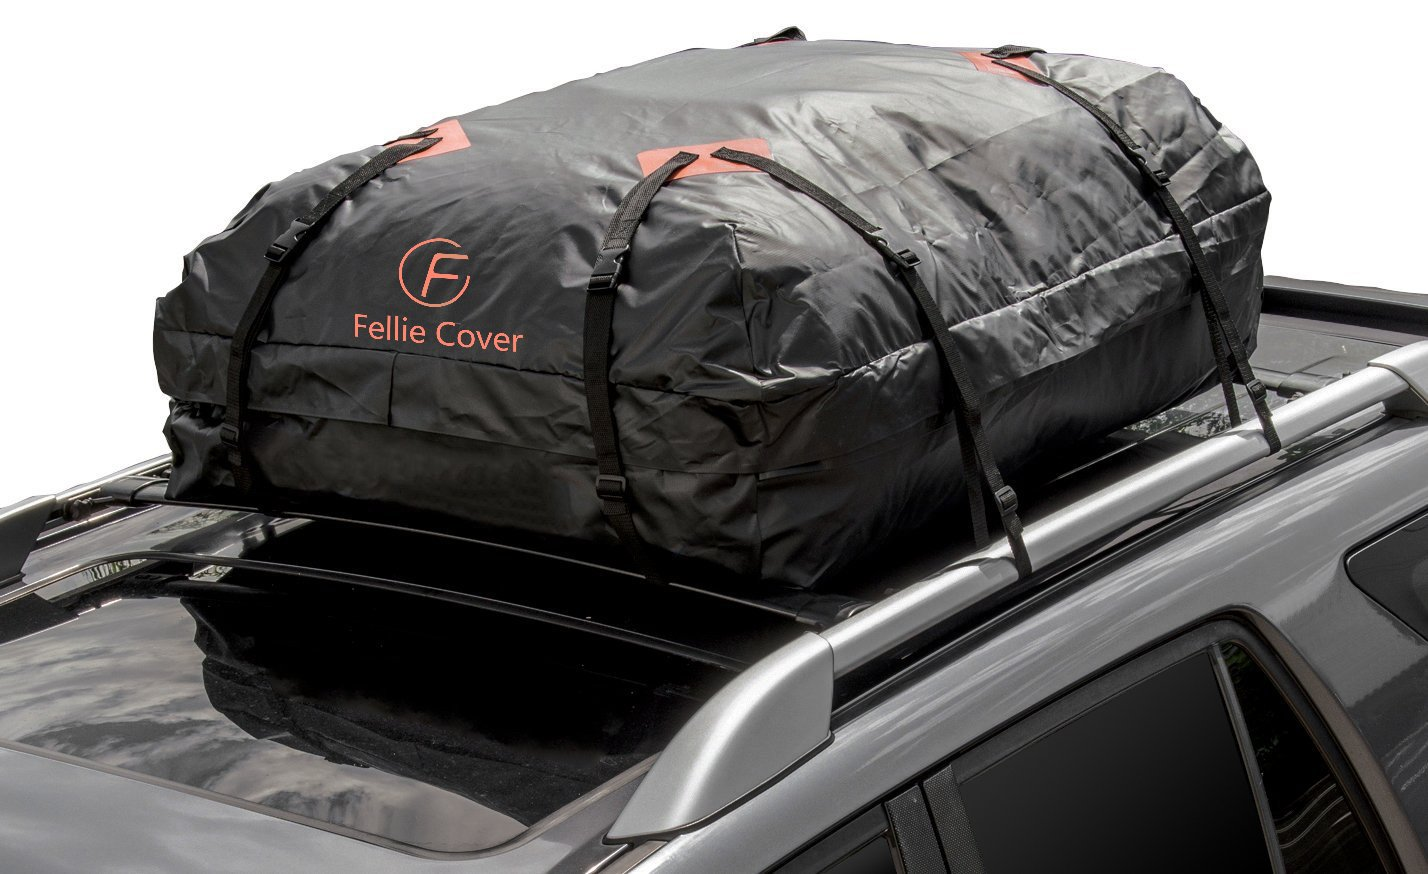 F Fellie Cover Car Cargo Bag Waterproof Roof Carrier Bag with Heavy Duty Wide Straps Buckles for Car SUV Jeep (16 Cubic Feet Capacity)